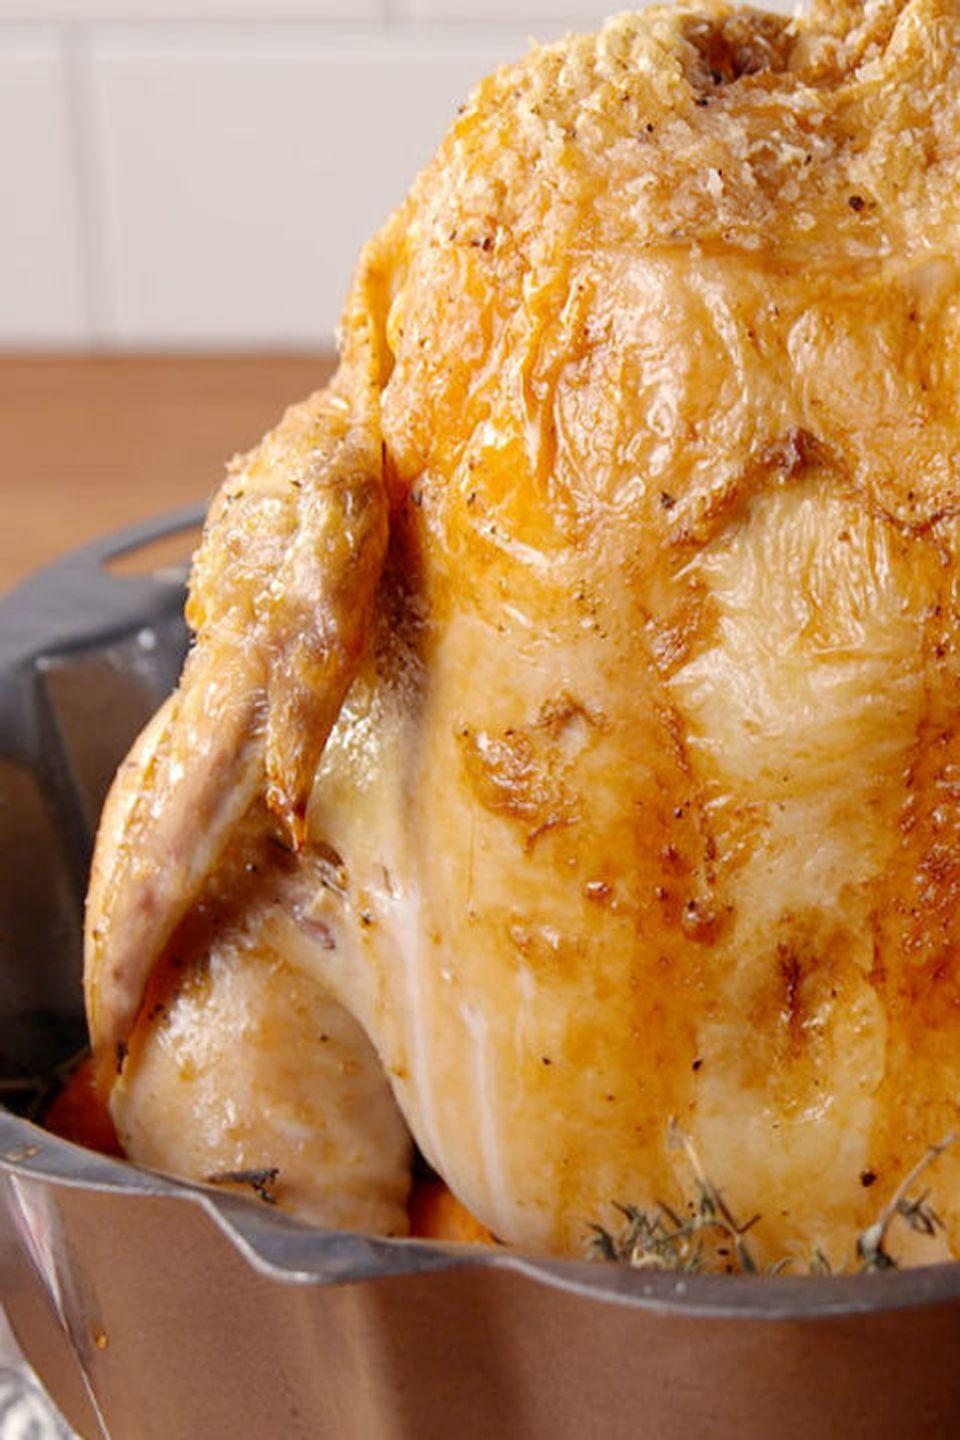 "<p>This easy hack results in a perfect roast chicken, and the veggies to go along with it!</p><p><strong><a href=""http://www.delish.com/cooking/recipe-ideas/recipes/a51763/bundt-pan-roast-chicken-recipe/"" rel=""nofollow noopener"" target=""_blank"" data-ylk=""slk:Get the recipe."" class=""link rapid-noclick-resp"">Get the recipe.</a> </strong><br></p><p><a class=""link rapid-noclick-resp"" href=""https://www.amazon.com/Nordic-Ware-Platinum-Collection-Bundt/dp/B00004RFQ4?tag=syn-yahoo-20&ascsubtag=%5Bartid%7C10050.g.680%5Bsrc%7Cyahoo-us"" rel=""nofollow noopener"" target=""_blank"" data-ylk=""slk:SHOP BUNDT PANS"">SHOP BUNDT PANS</a> </p>"